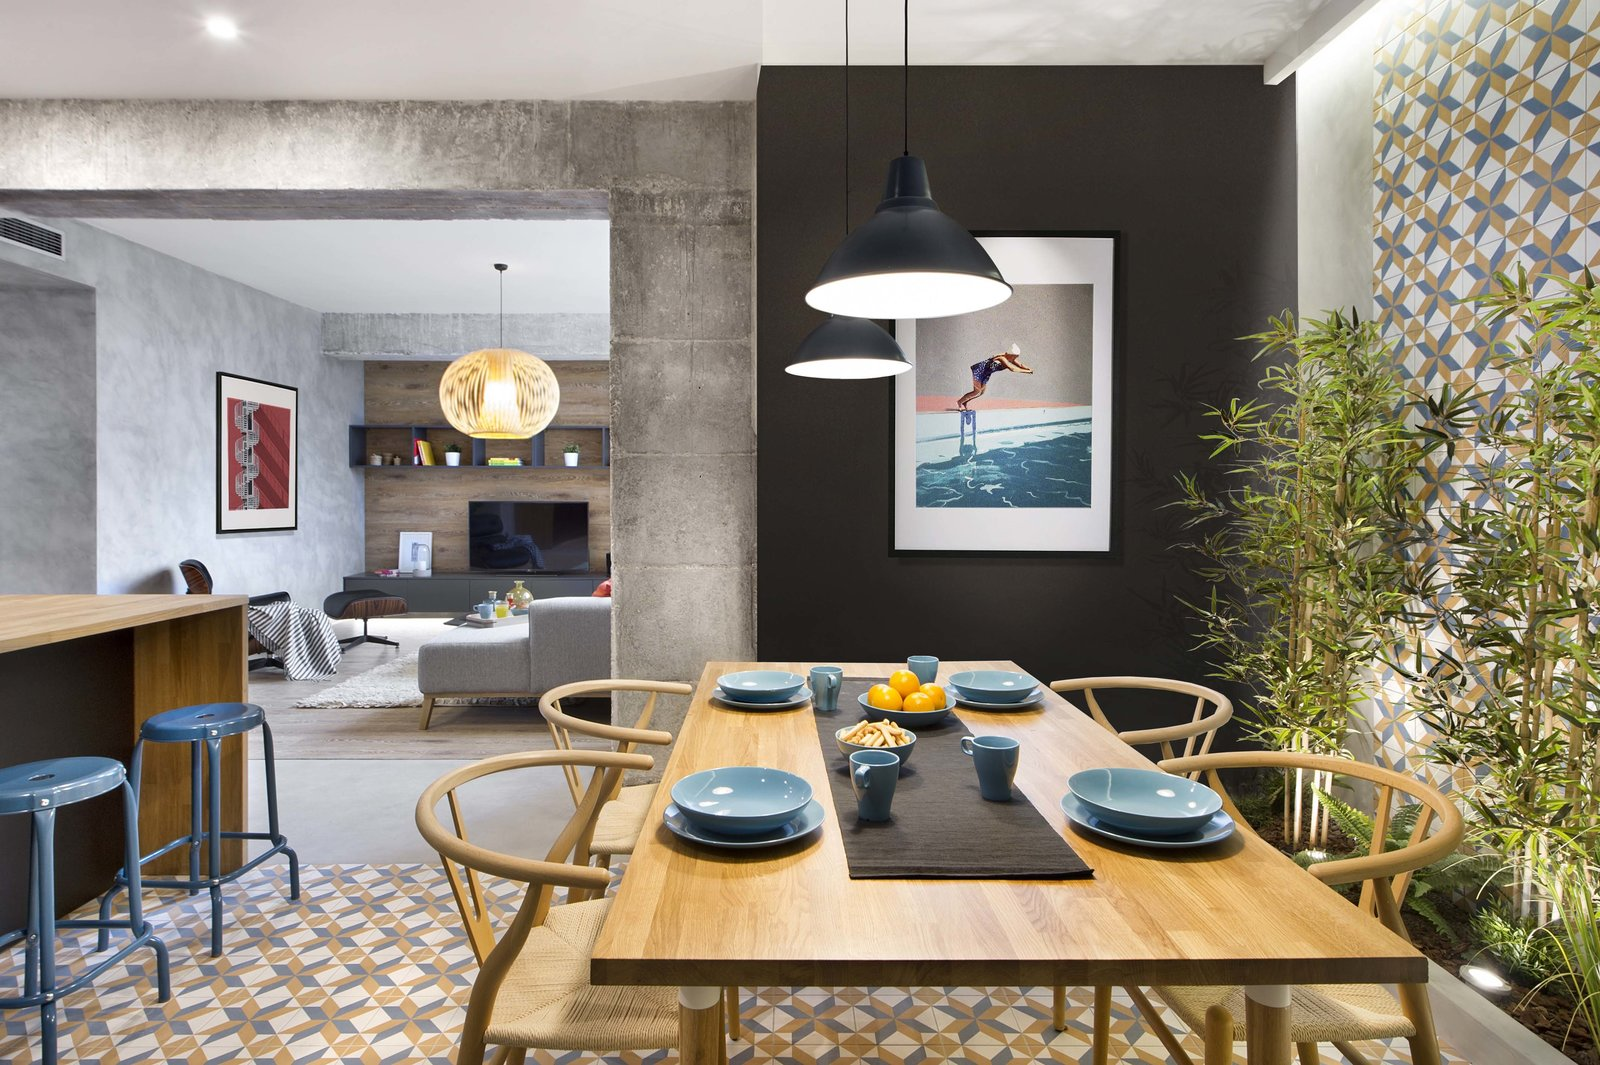 Tagged: Dining, Chair, Table, Pendant, Ceramic Tile, and Stools.  Best Dining Pendant Stools Photos from In This Compact Barcelona Apartment, Space Is Maximized With Smart Material Choices